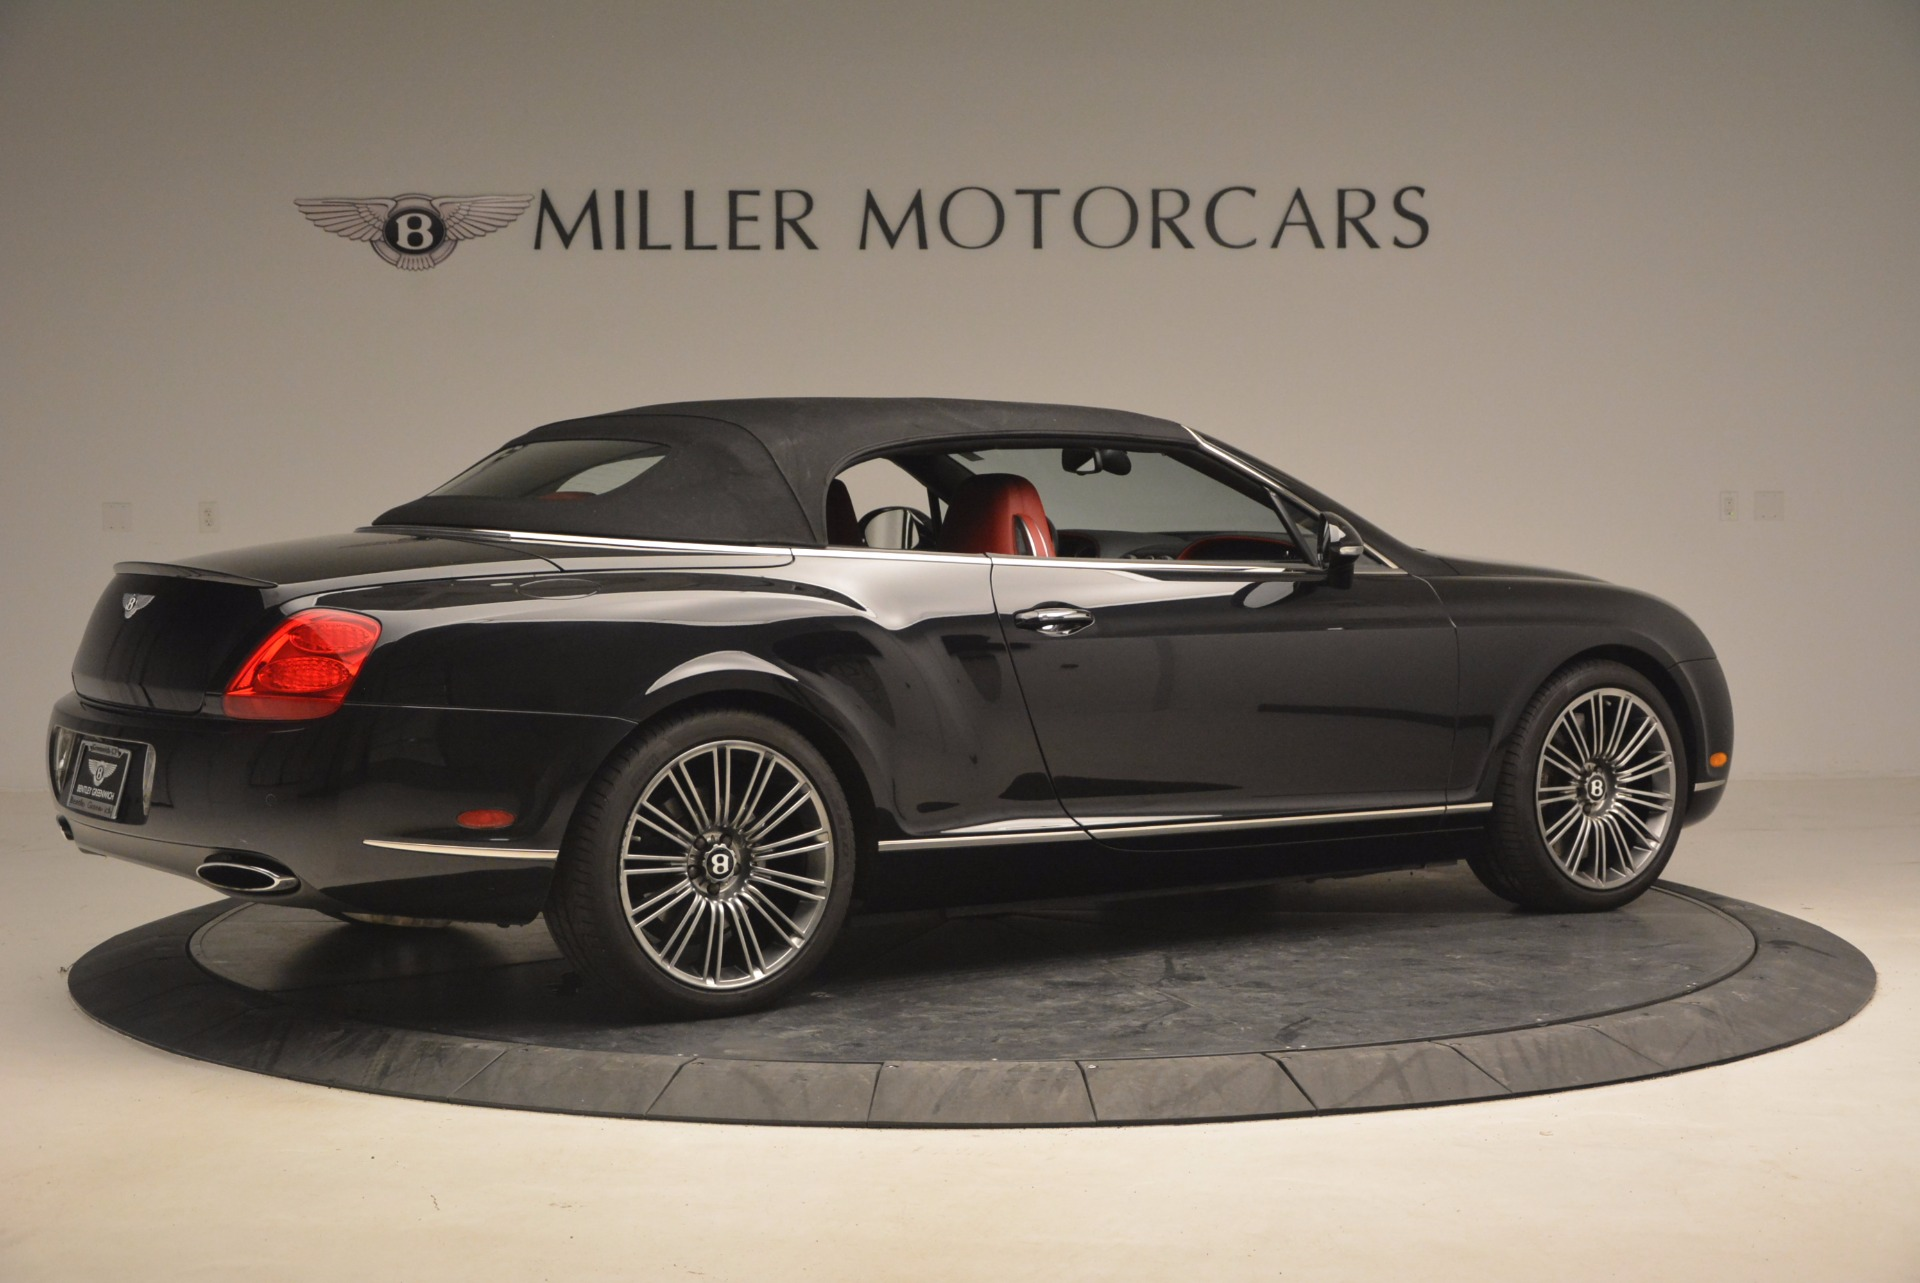 Used 2010 Bentley Continental GT Speed For Sale In Westport, CT 1298_p21